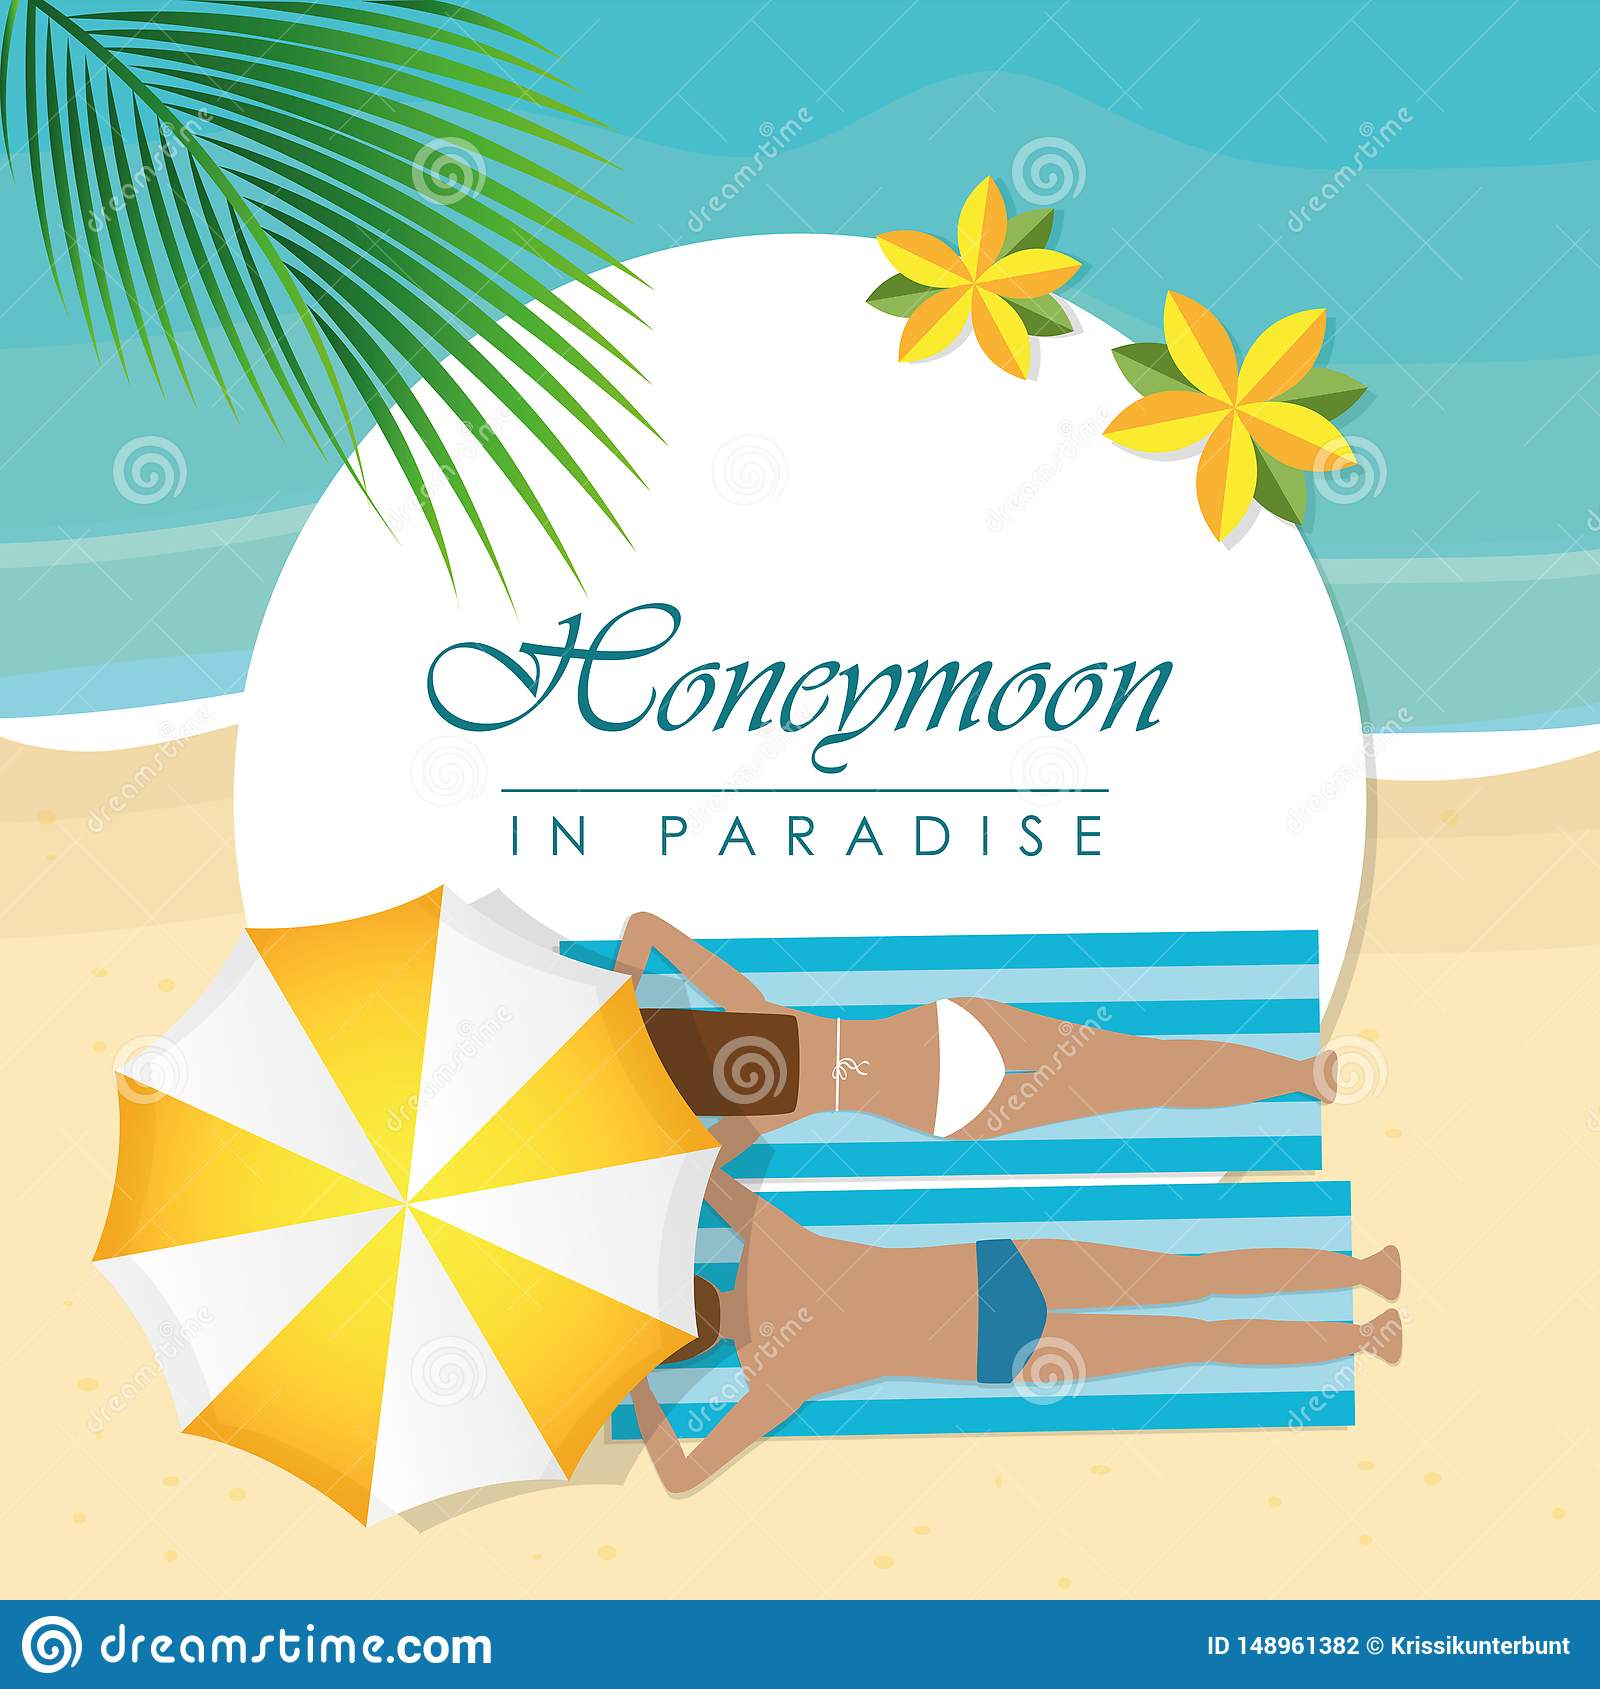 Honeymoon in paradise design couple on the beach with palm leaf